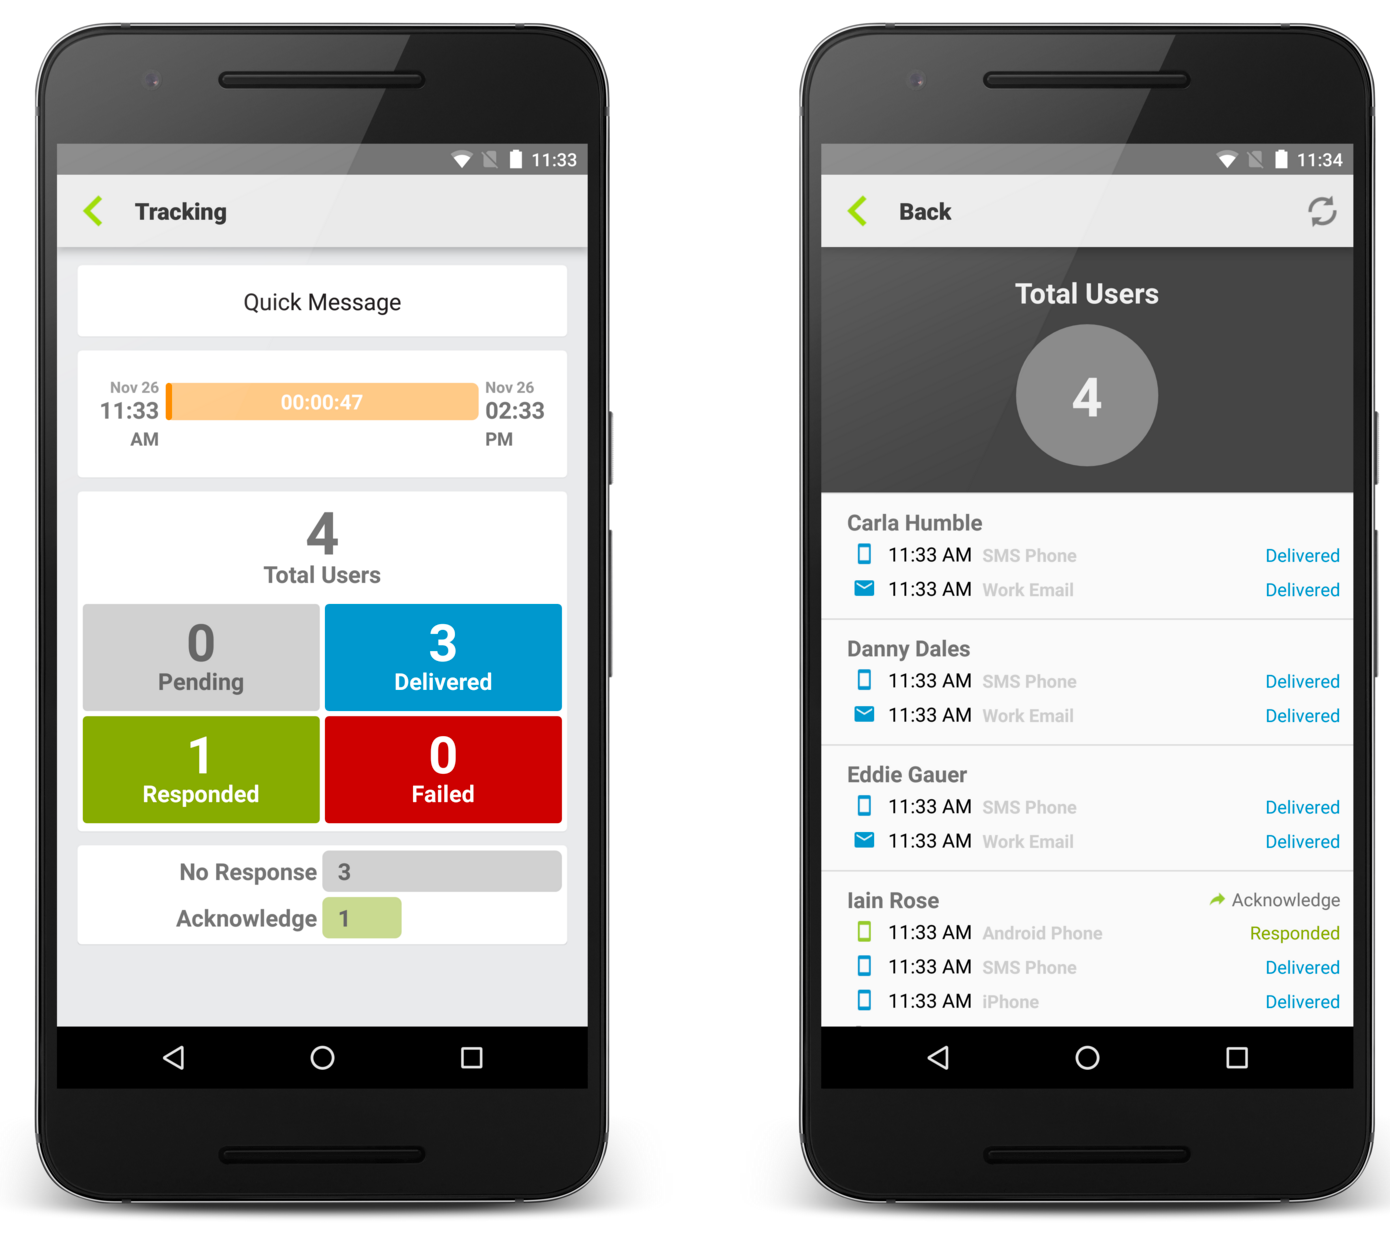 Enhanced Tracking Report for the Android app